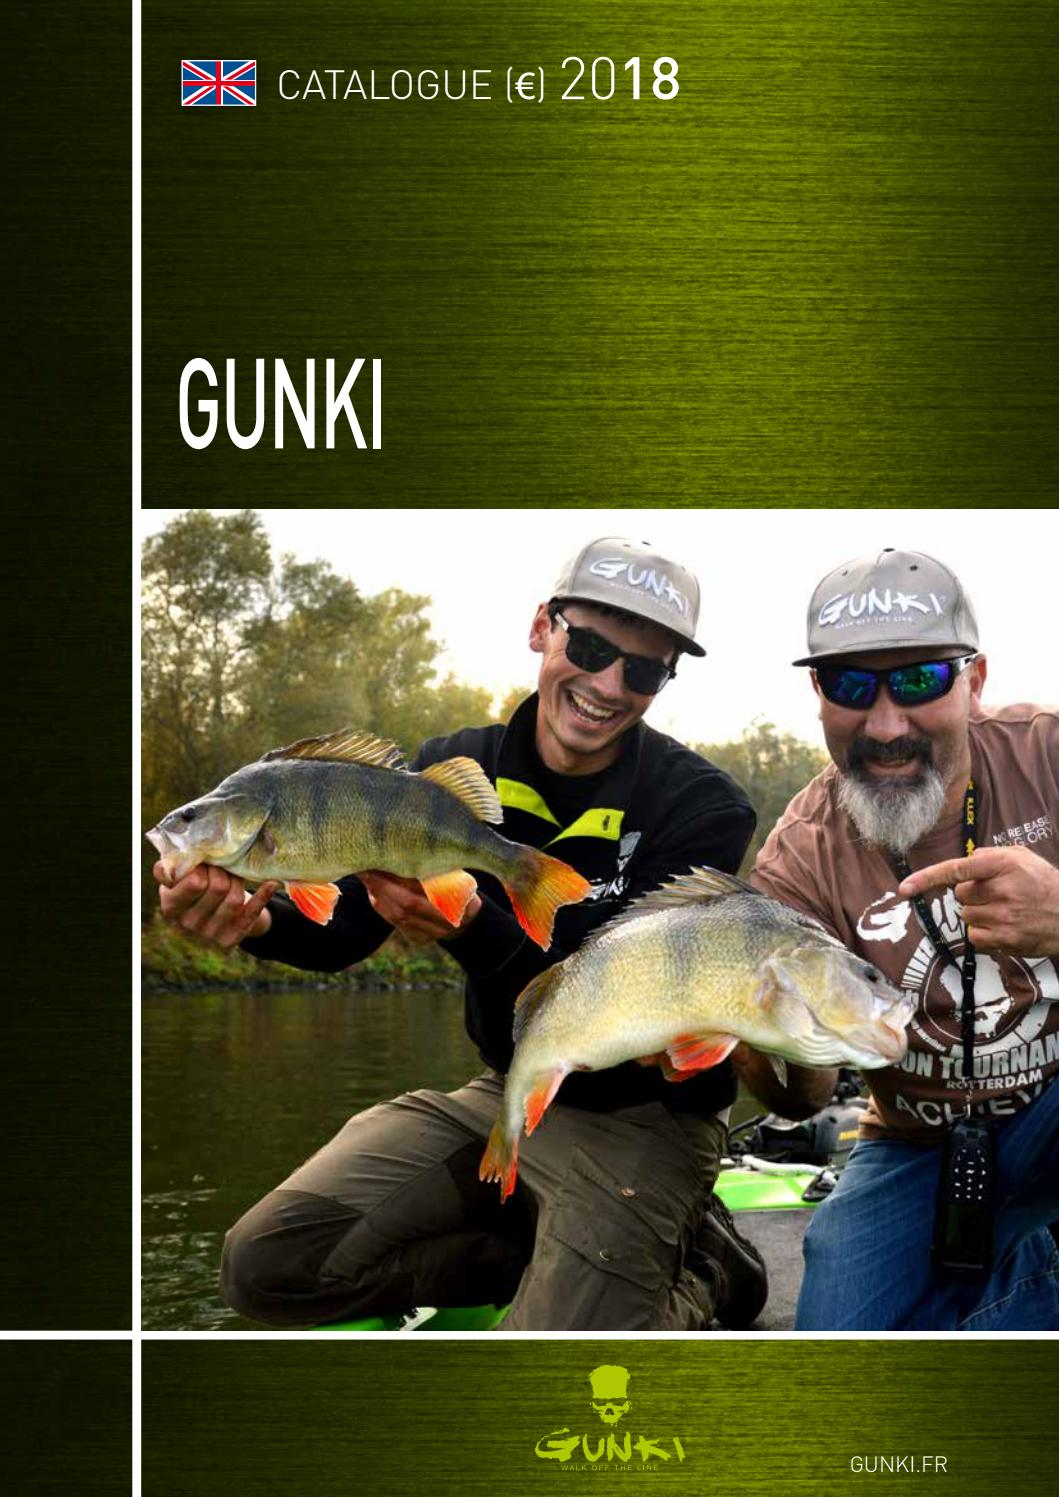 "GUNKI Street Fishing WHIZ 2/"" 3/"" 4/"" Soft Lures Preadtor Fishing Tackle Perch Chub"